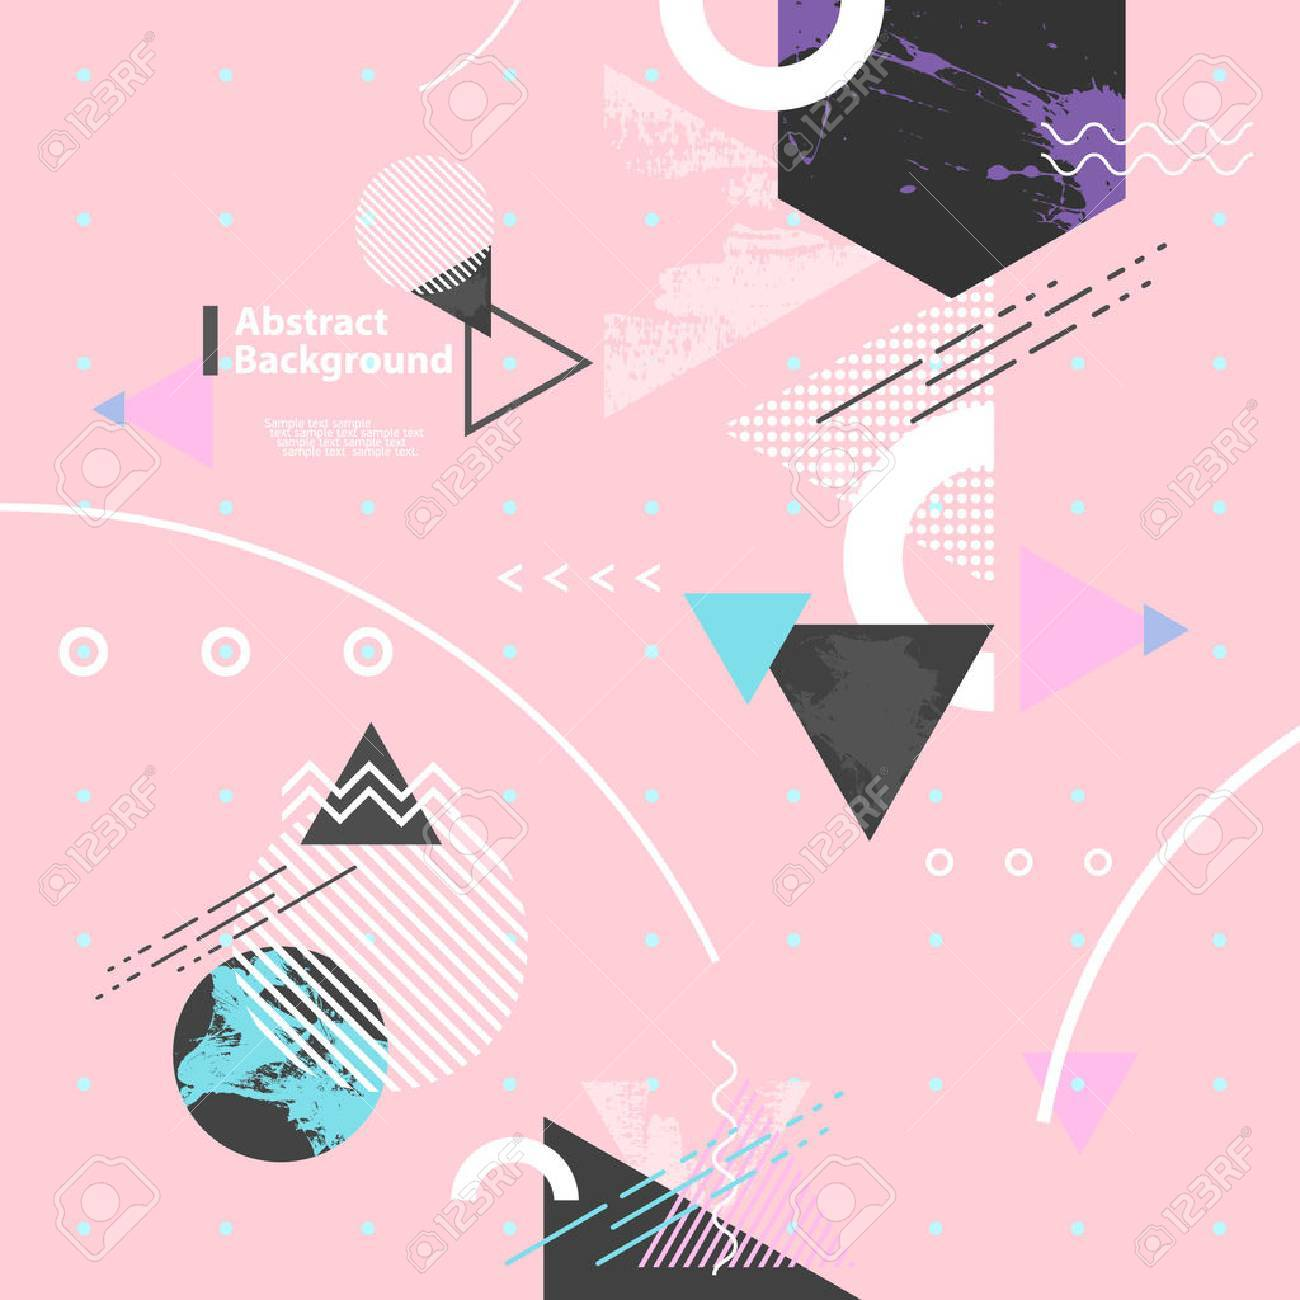 Abstract modern geometric background - 48825434